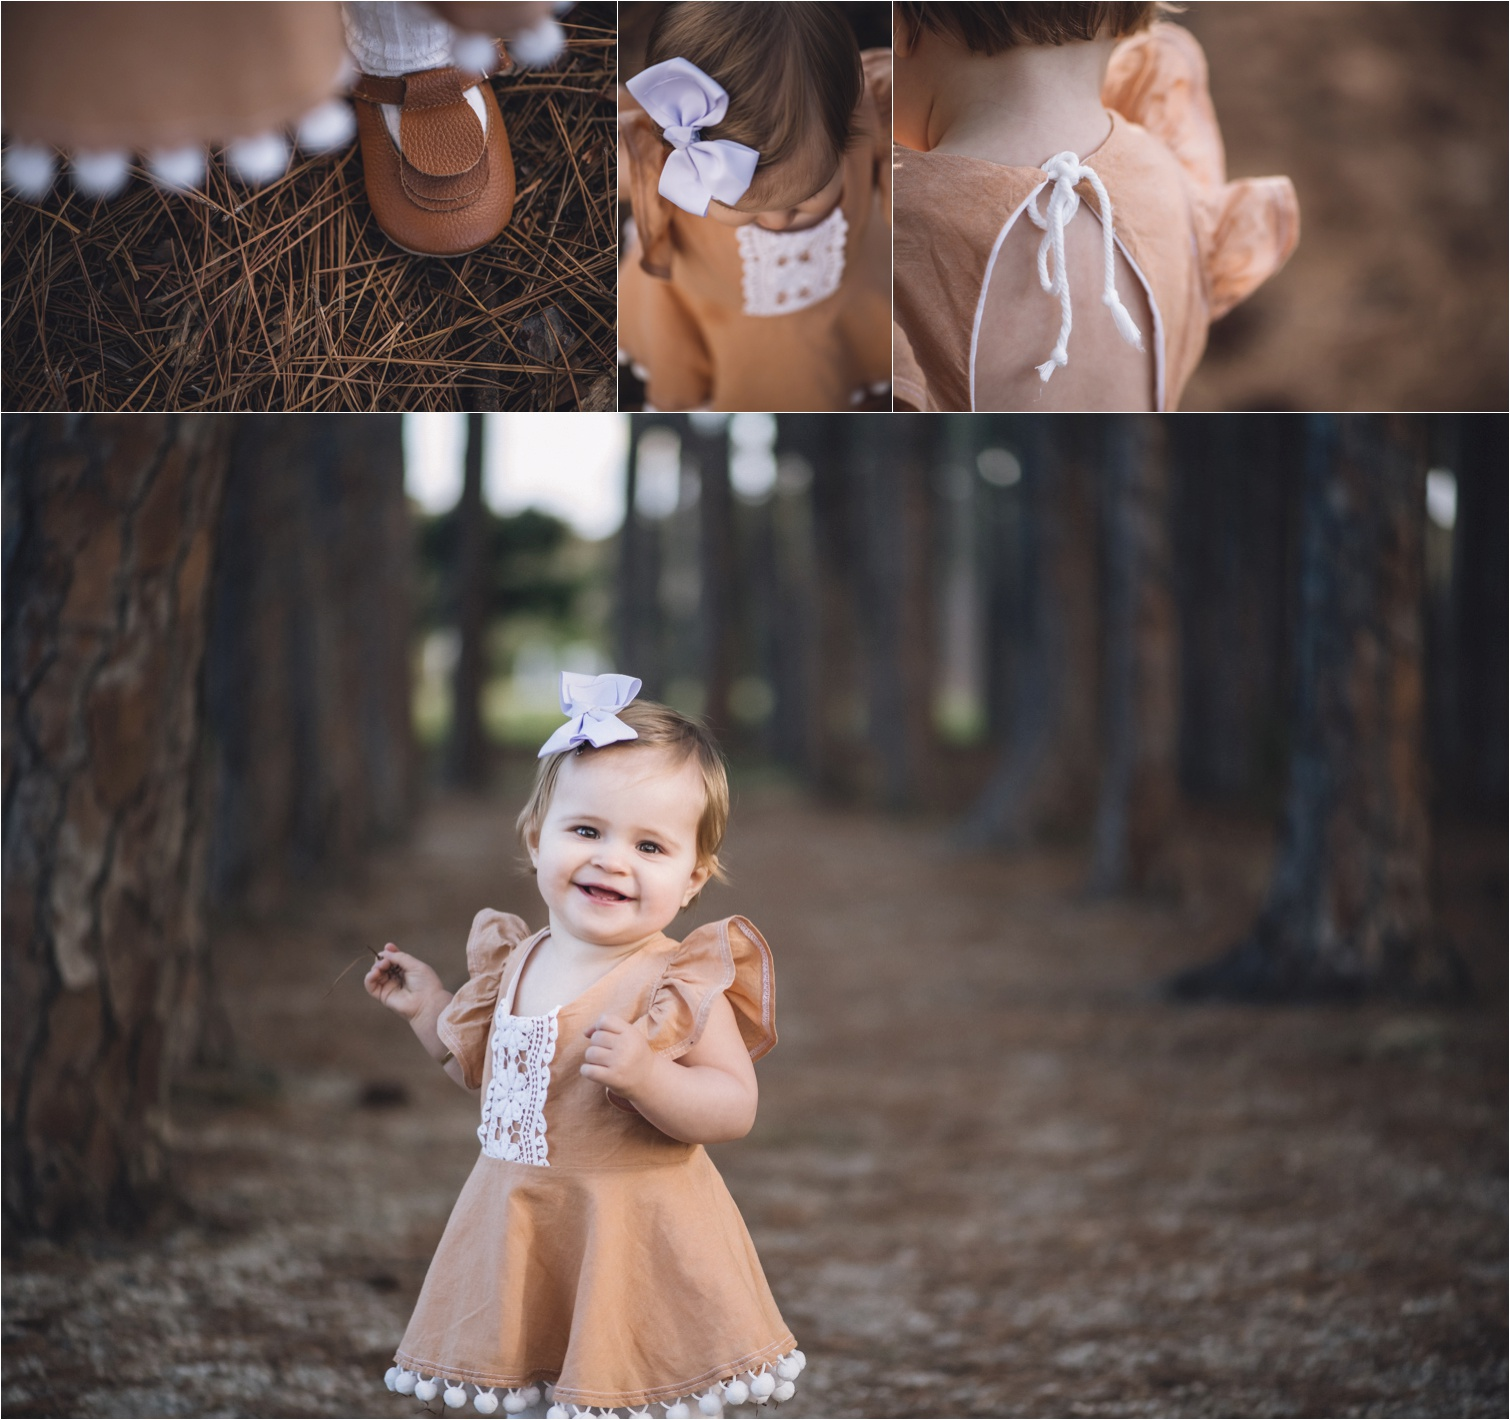 Pine_forest_family_photography_shoot - Gold Coast Family Photographer_0003.jpg